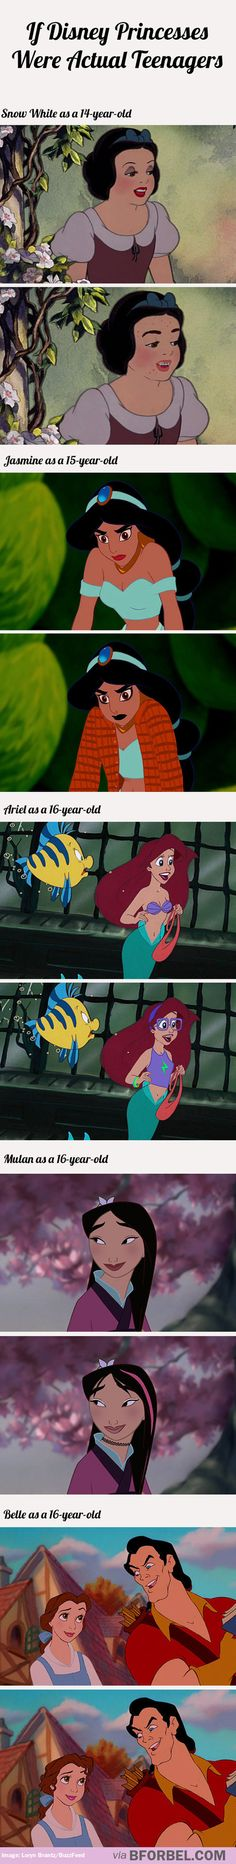 If Disney Princesses were actual teenagers…